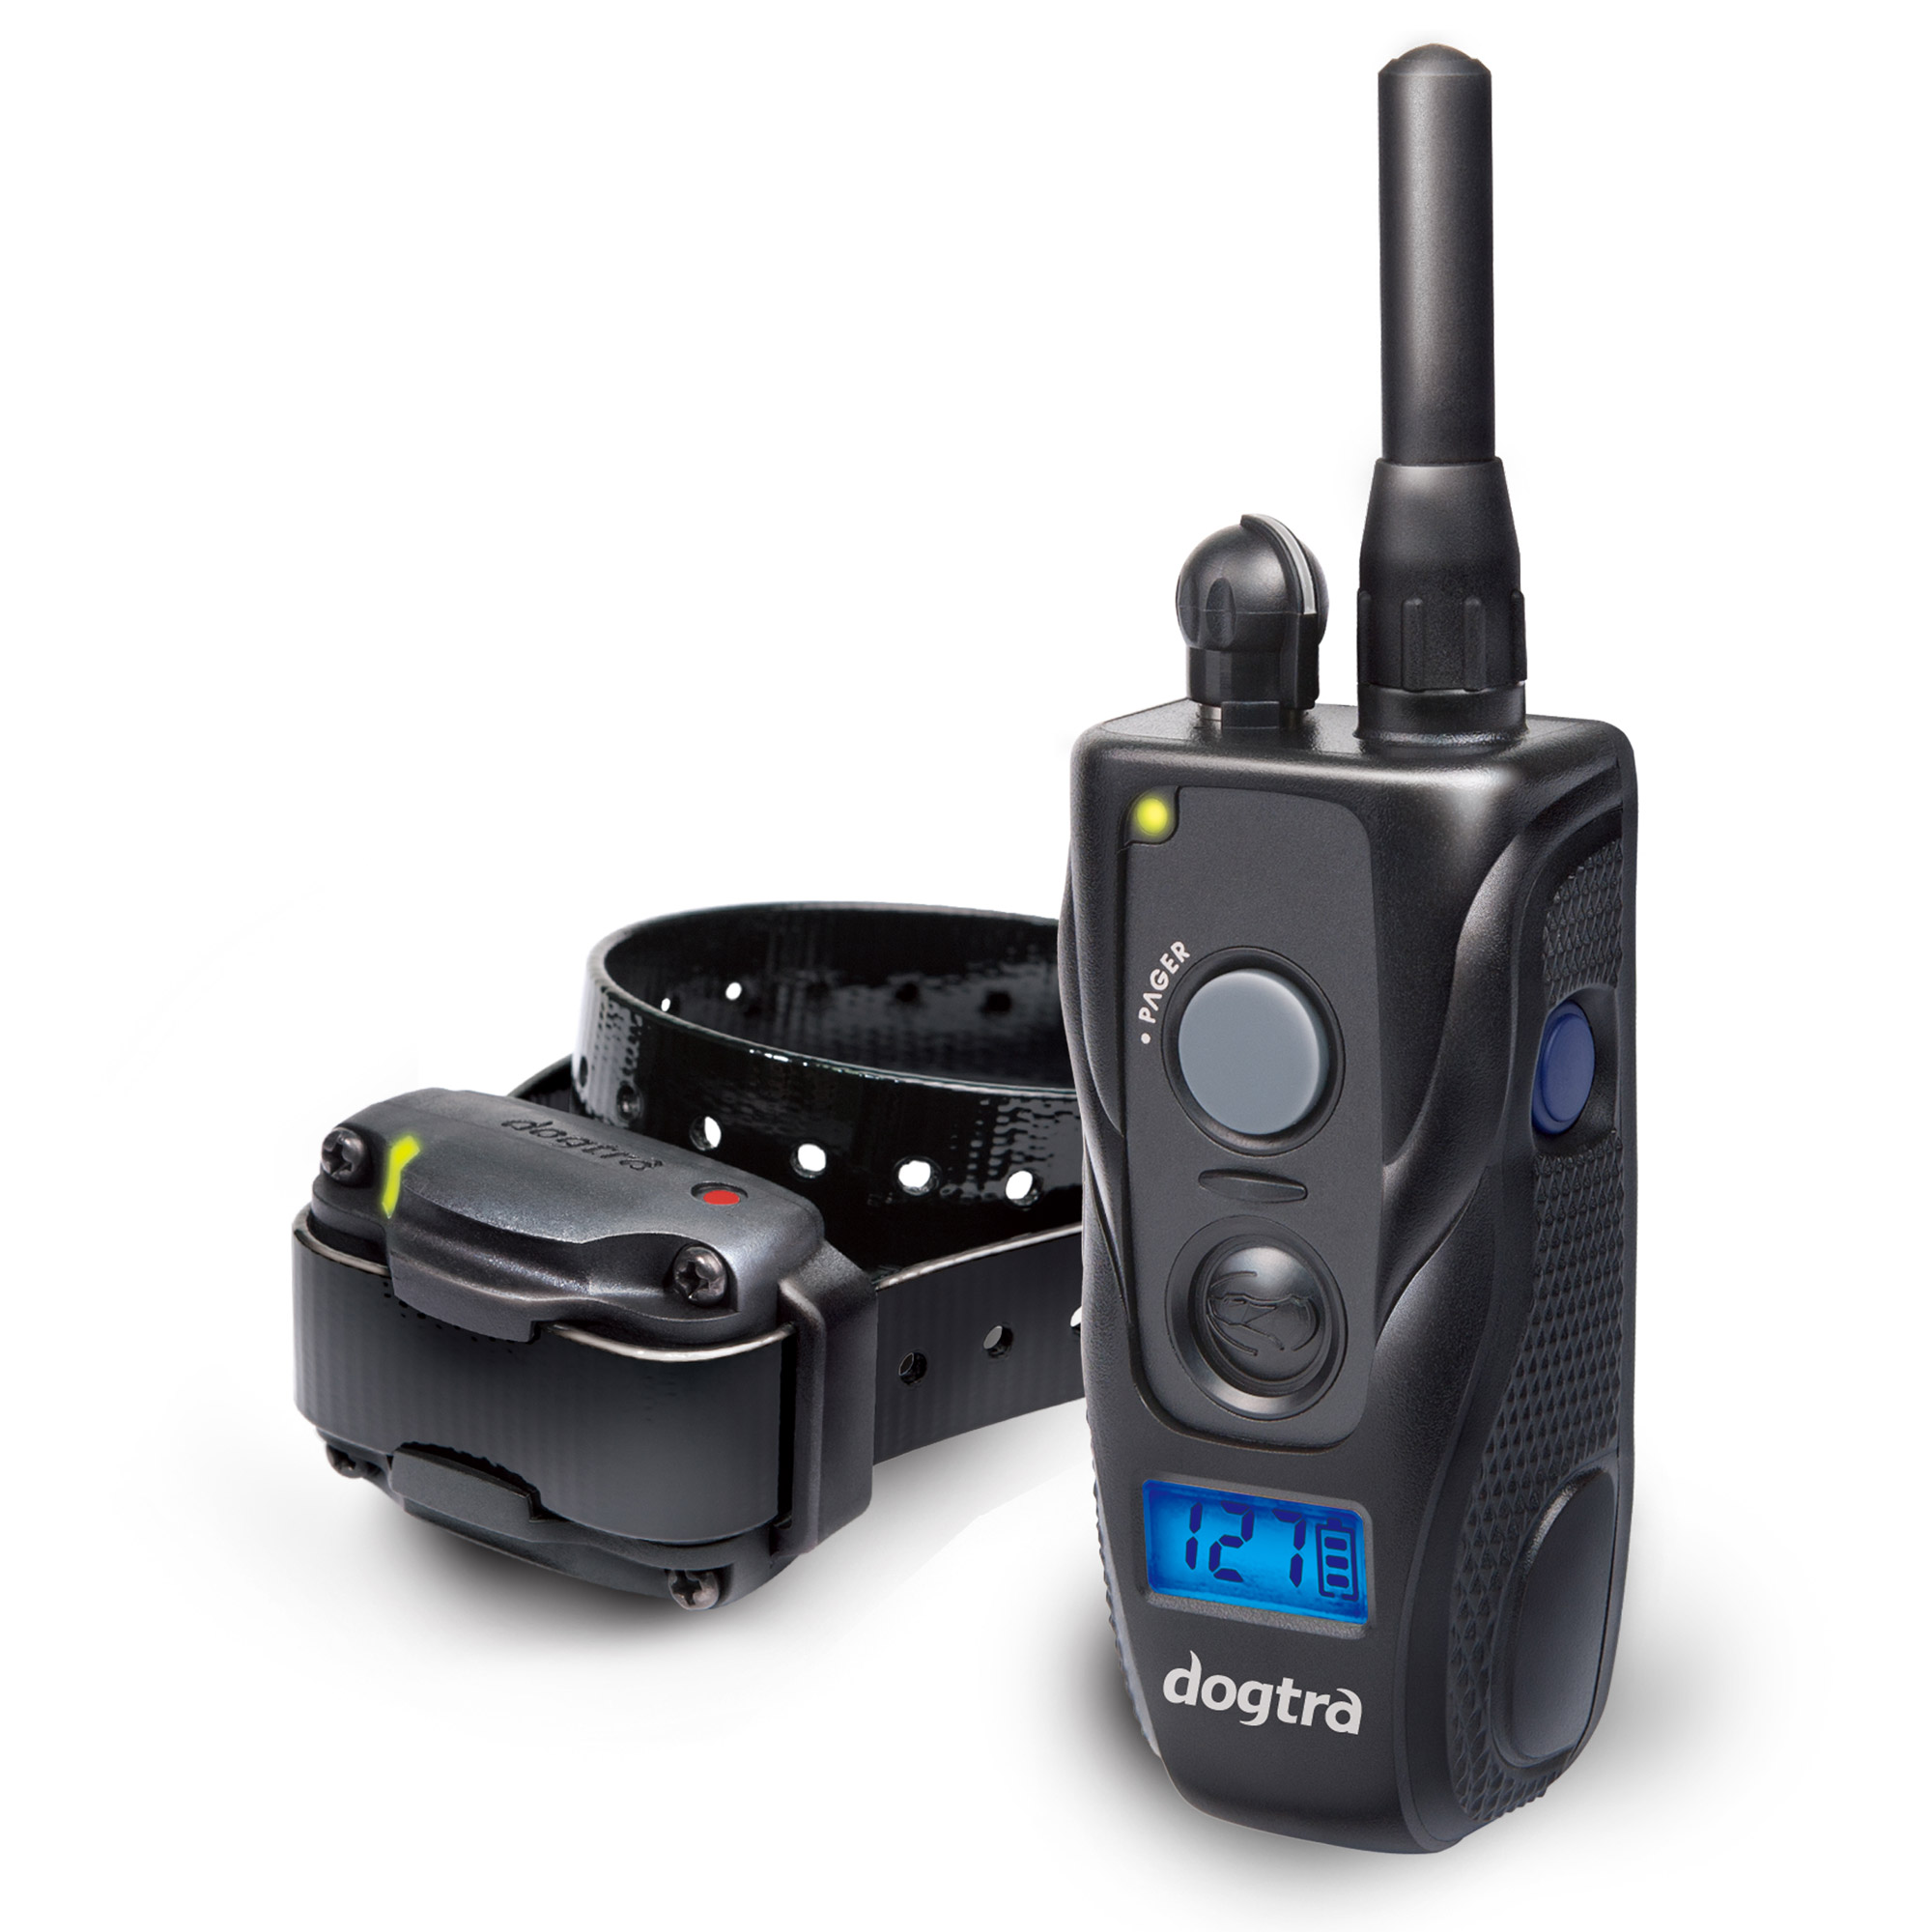 Dogtra 280C Basic Electronic Training Dog Collar with Remote for Dogs 10+ Pounds by Dogtra